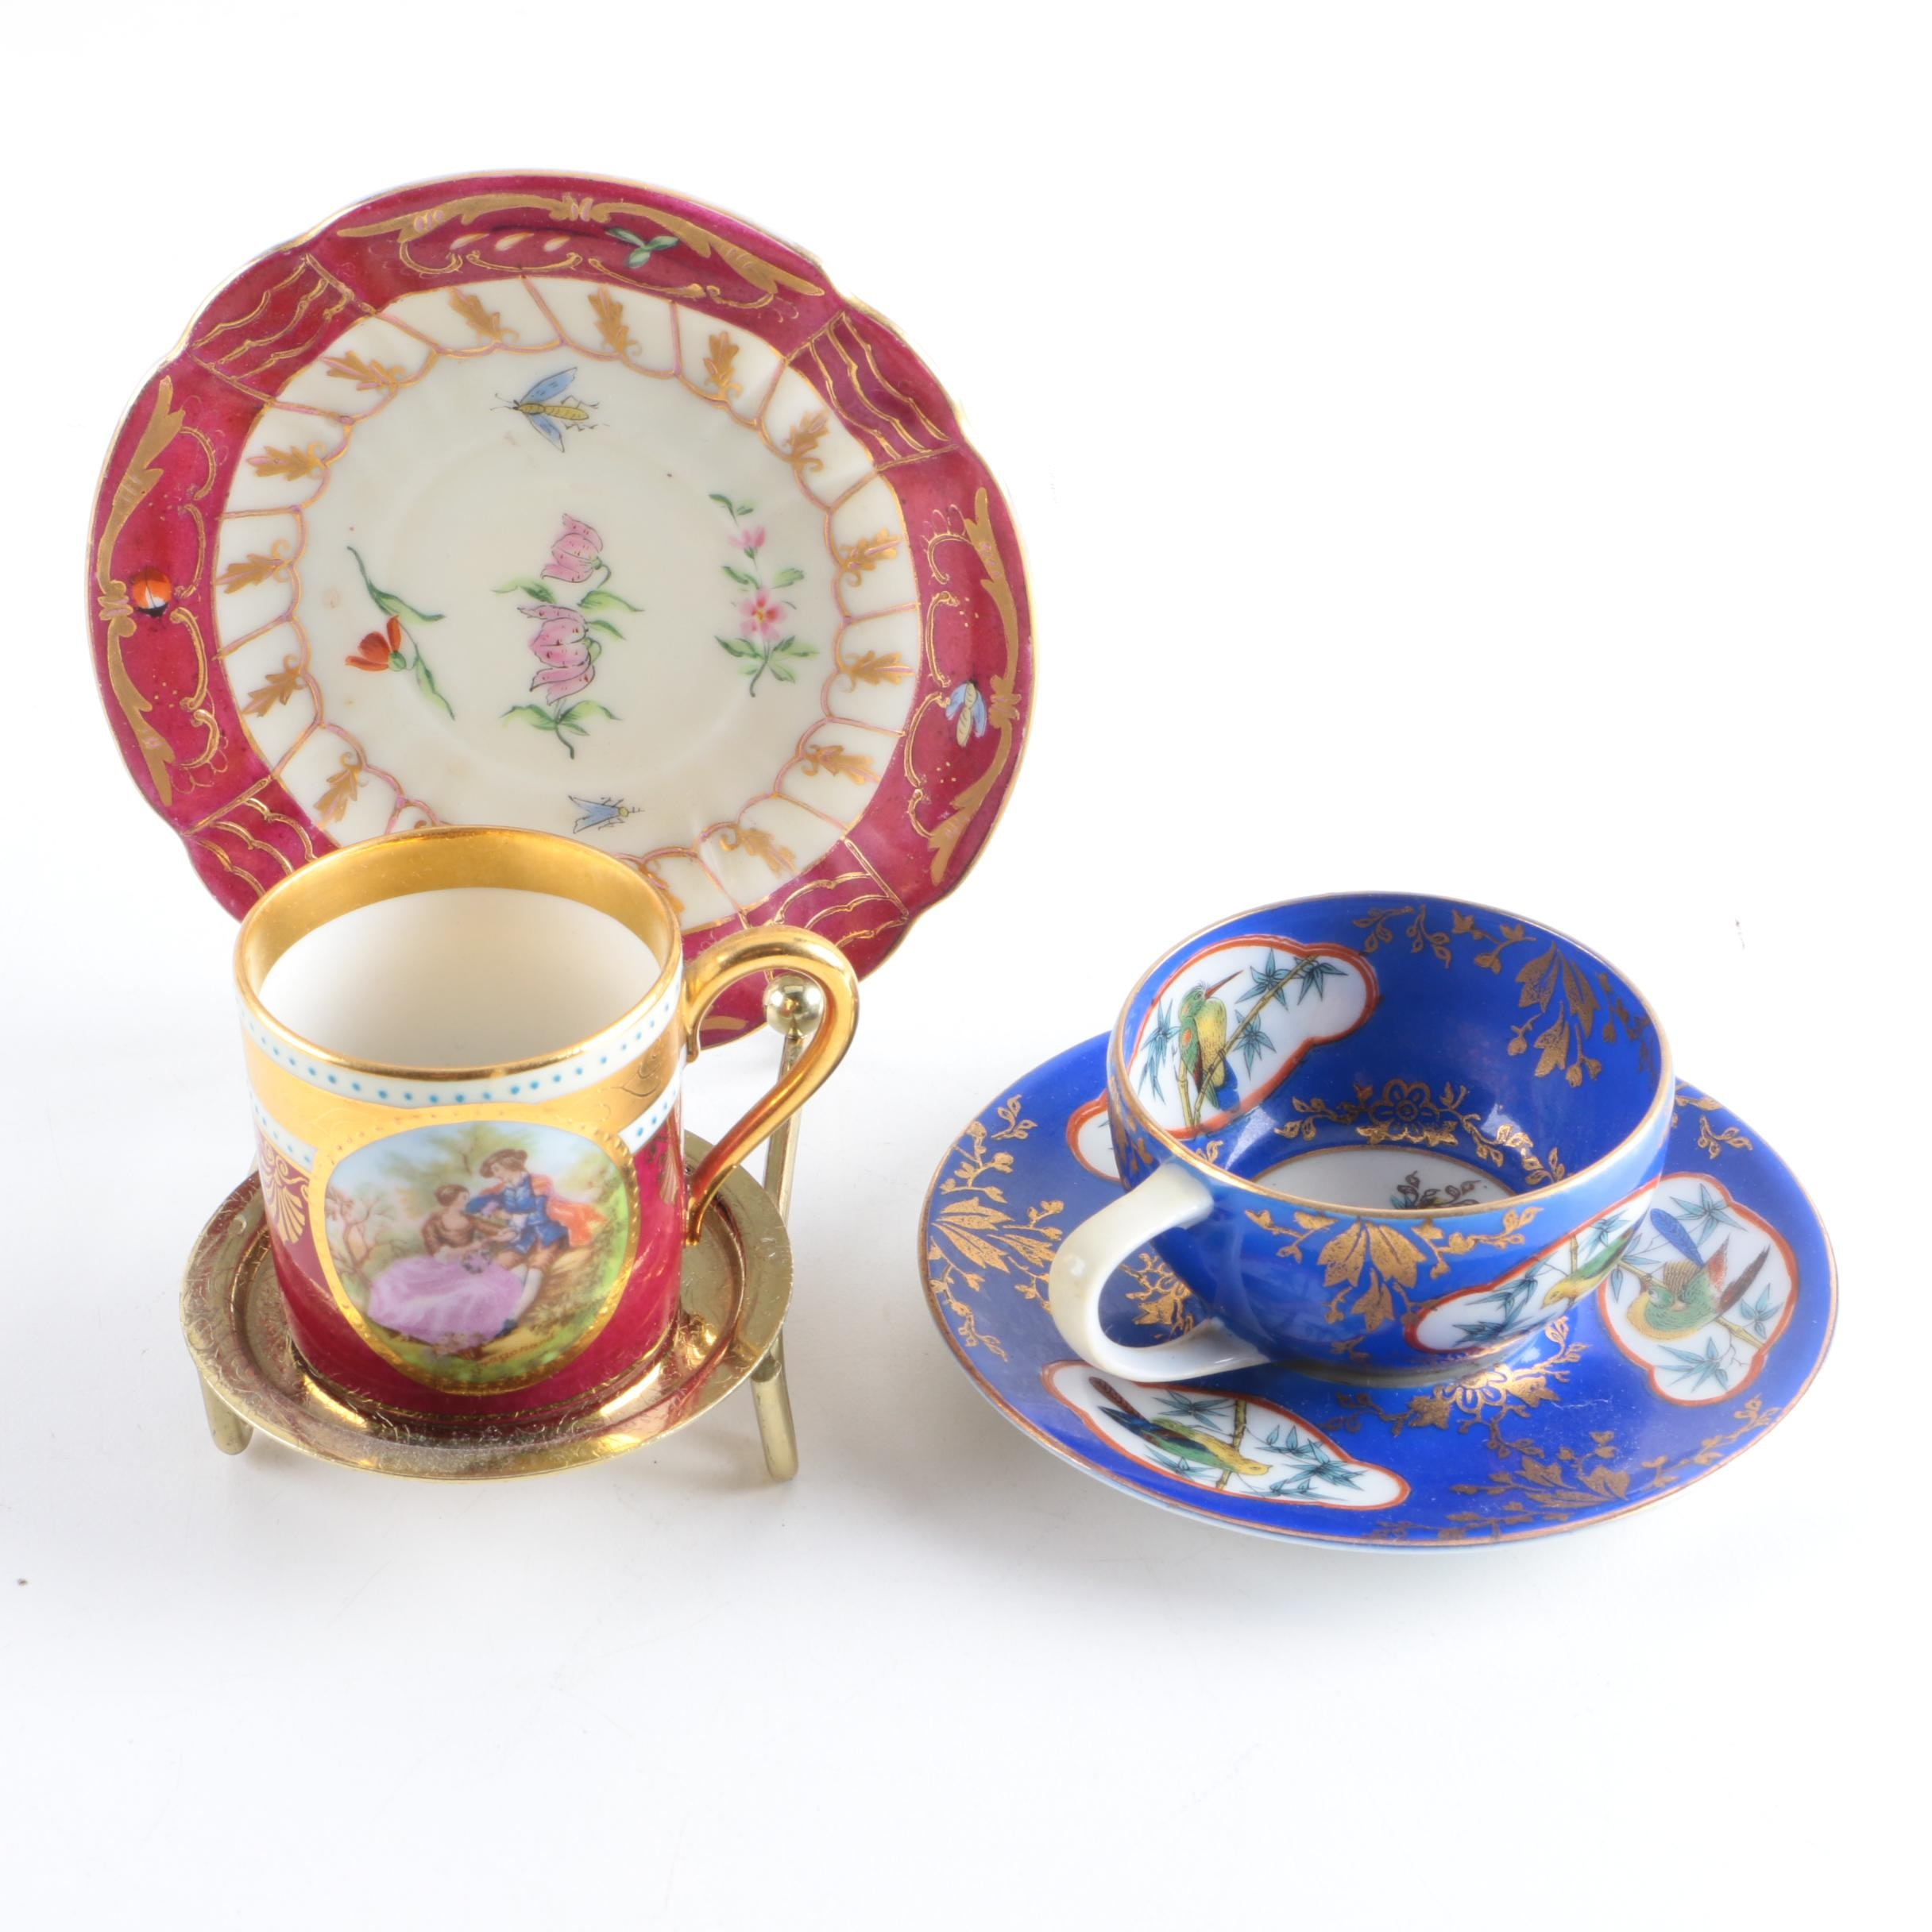 Hand-Painted Porcelain Teacups and Saucers Featuring R.S. Tillowitz